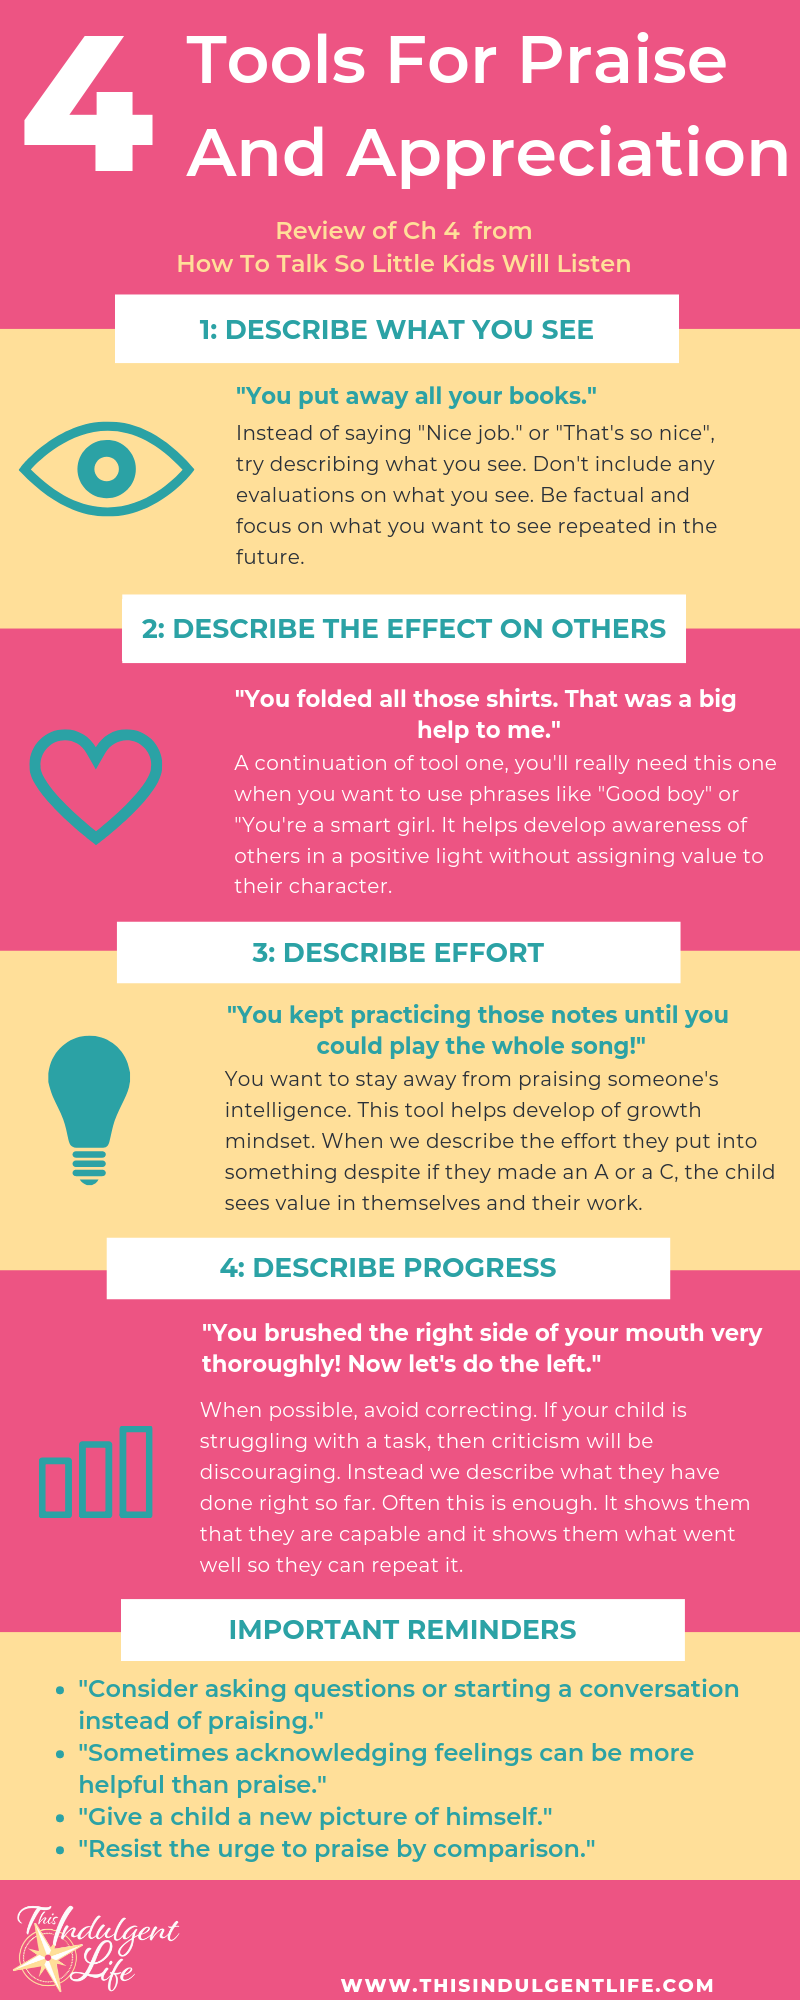 Infographic on the 4 Tools for Praise and Appreciation from 'How to Talk So Little Kids Will Listen' | This Indulgent Life | Want an easy way to see the 4 tools to show praise and appreciation to your children? Want to use effective praise? Then this infographic will help you show praise that build confidence. | #effectivepraise #praiseandappreciation #toolsforpraise #parentingbook #gentleparenting #respectfulparenting #bookreview #mindfulparenting #growthmindset #parentinghacks #parentingtips #parentinginfographic